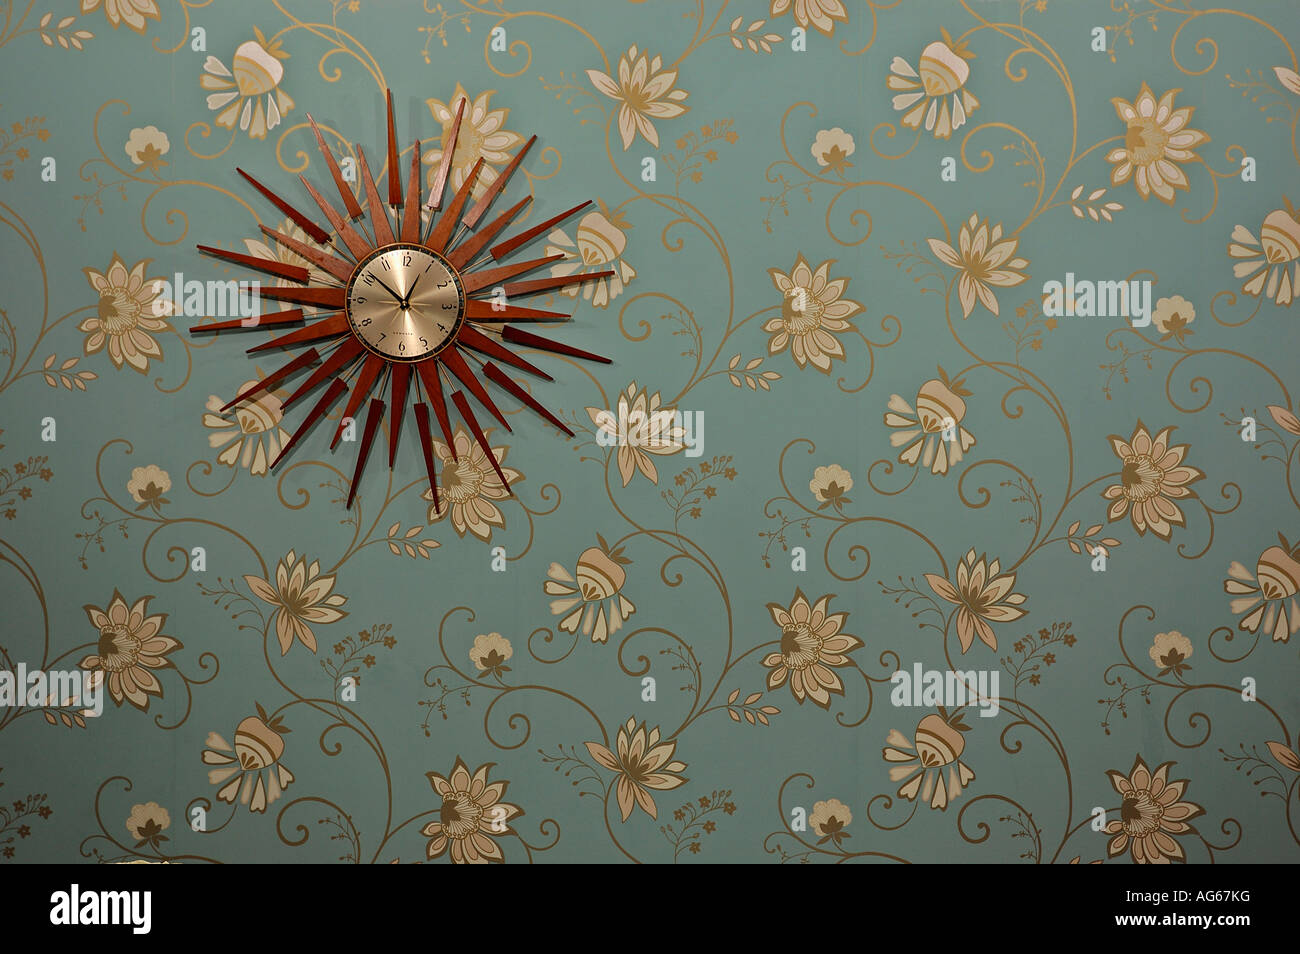 Close-up of sunburst clock on modern blue wallpaper with gold and cream stylised flower pattern - Stock Image